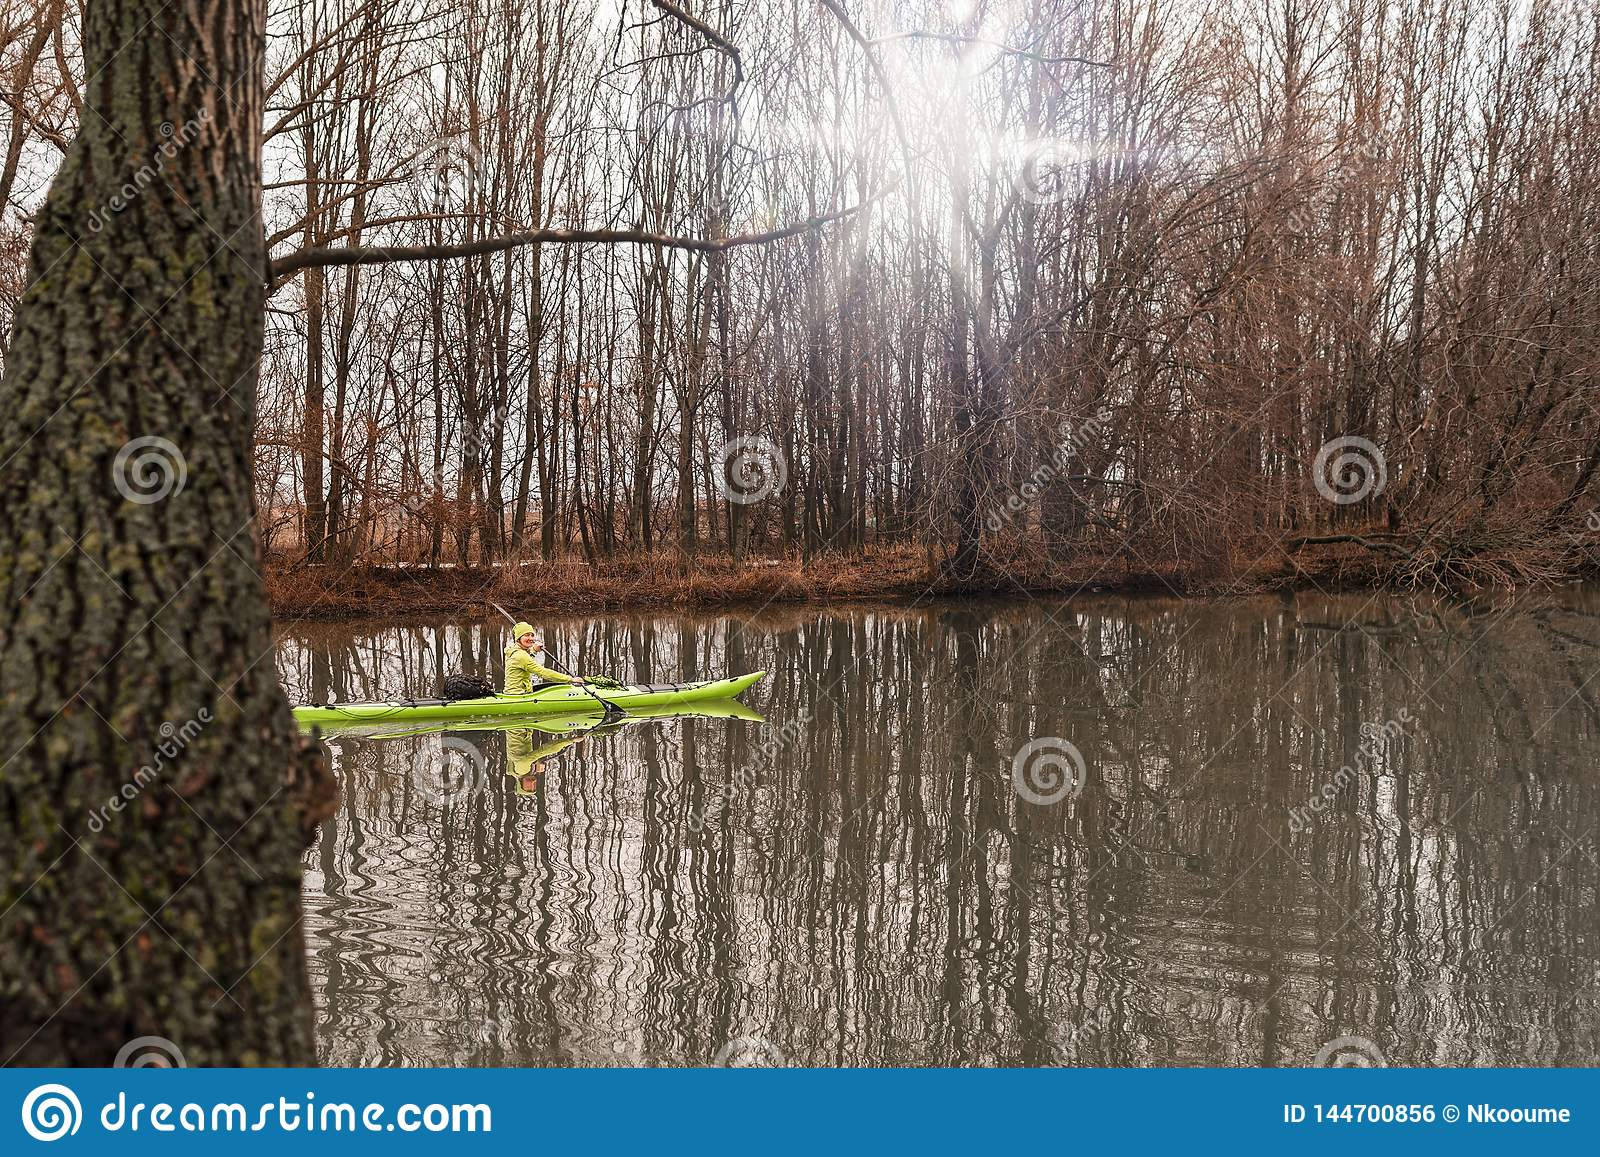 A girl on a kayak.The girl floats on the river in a kayak.